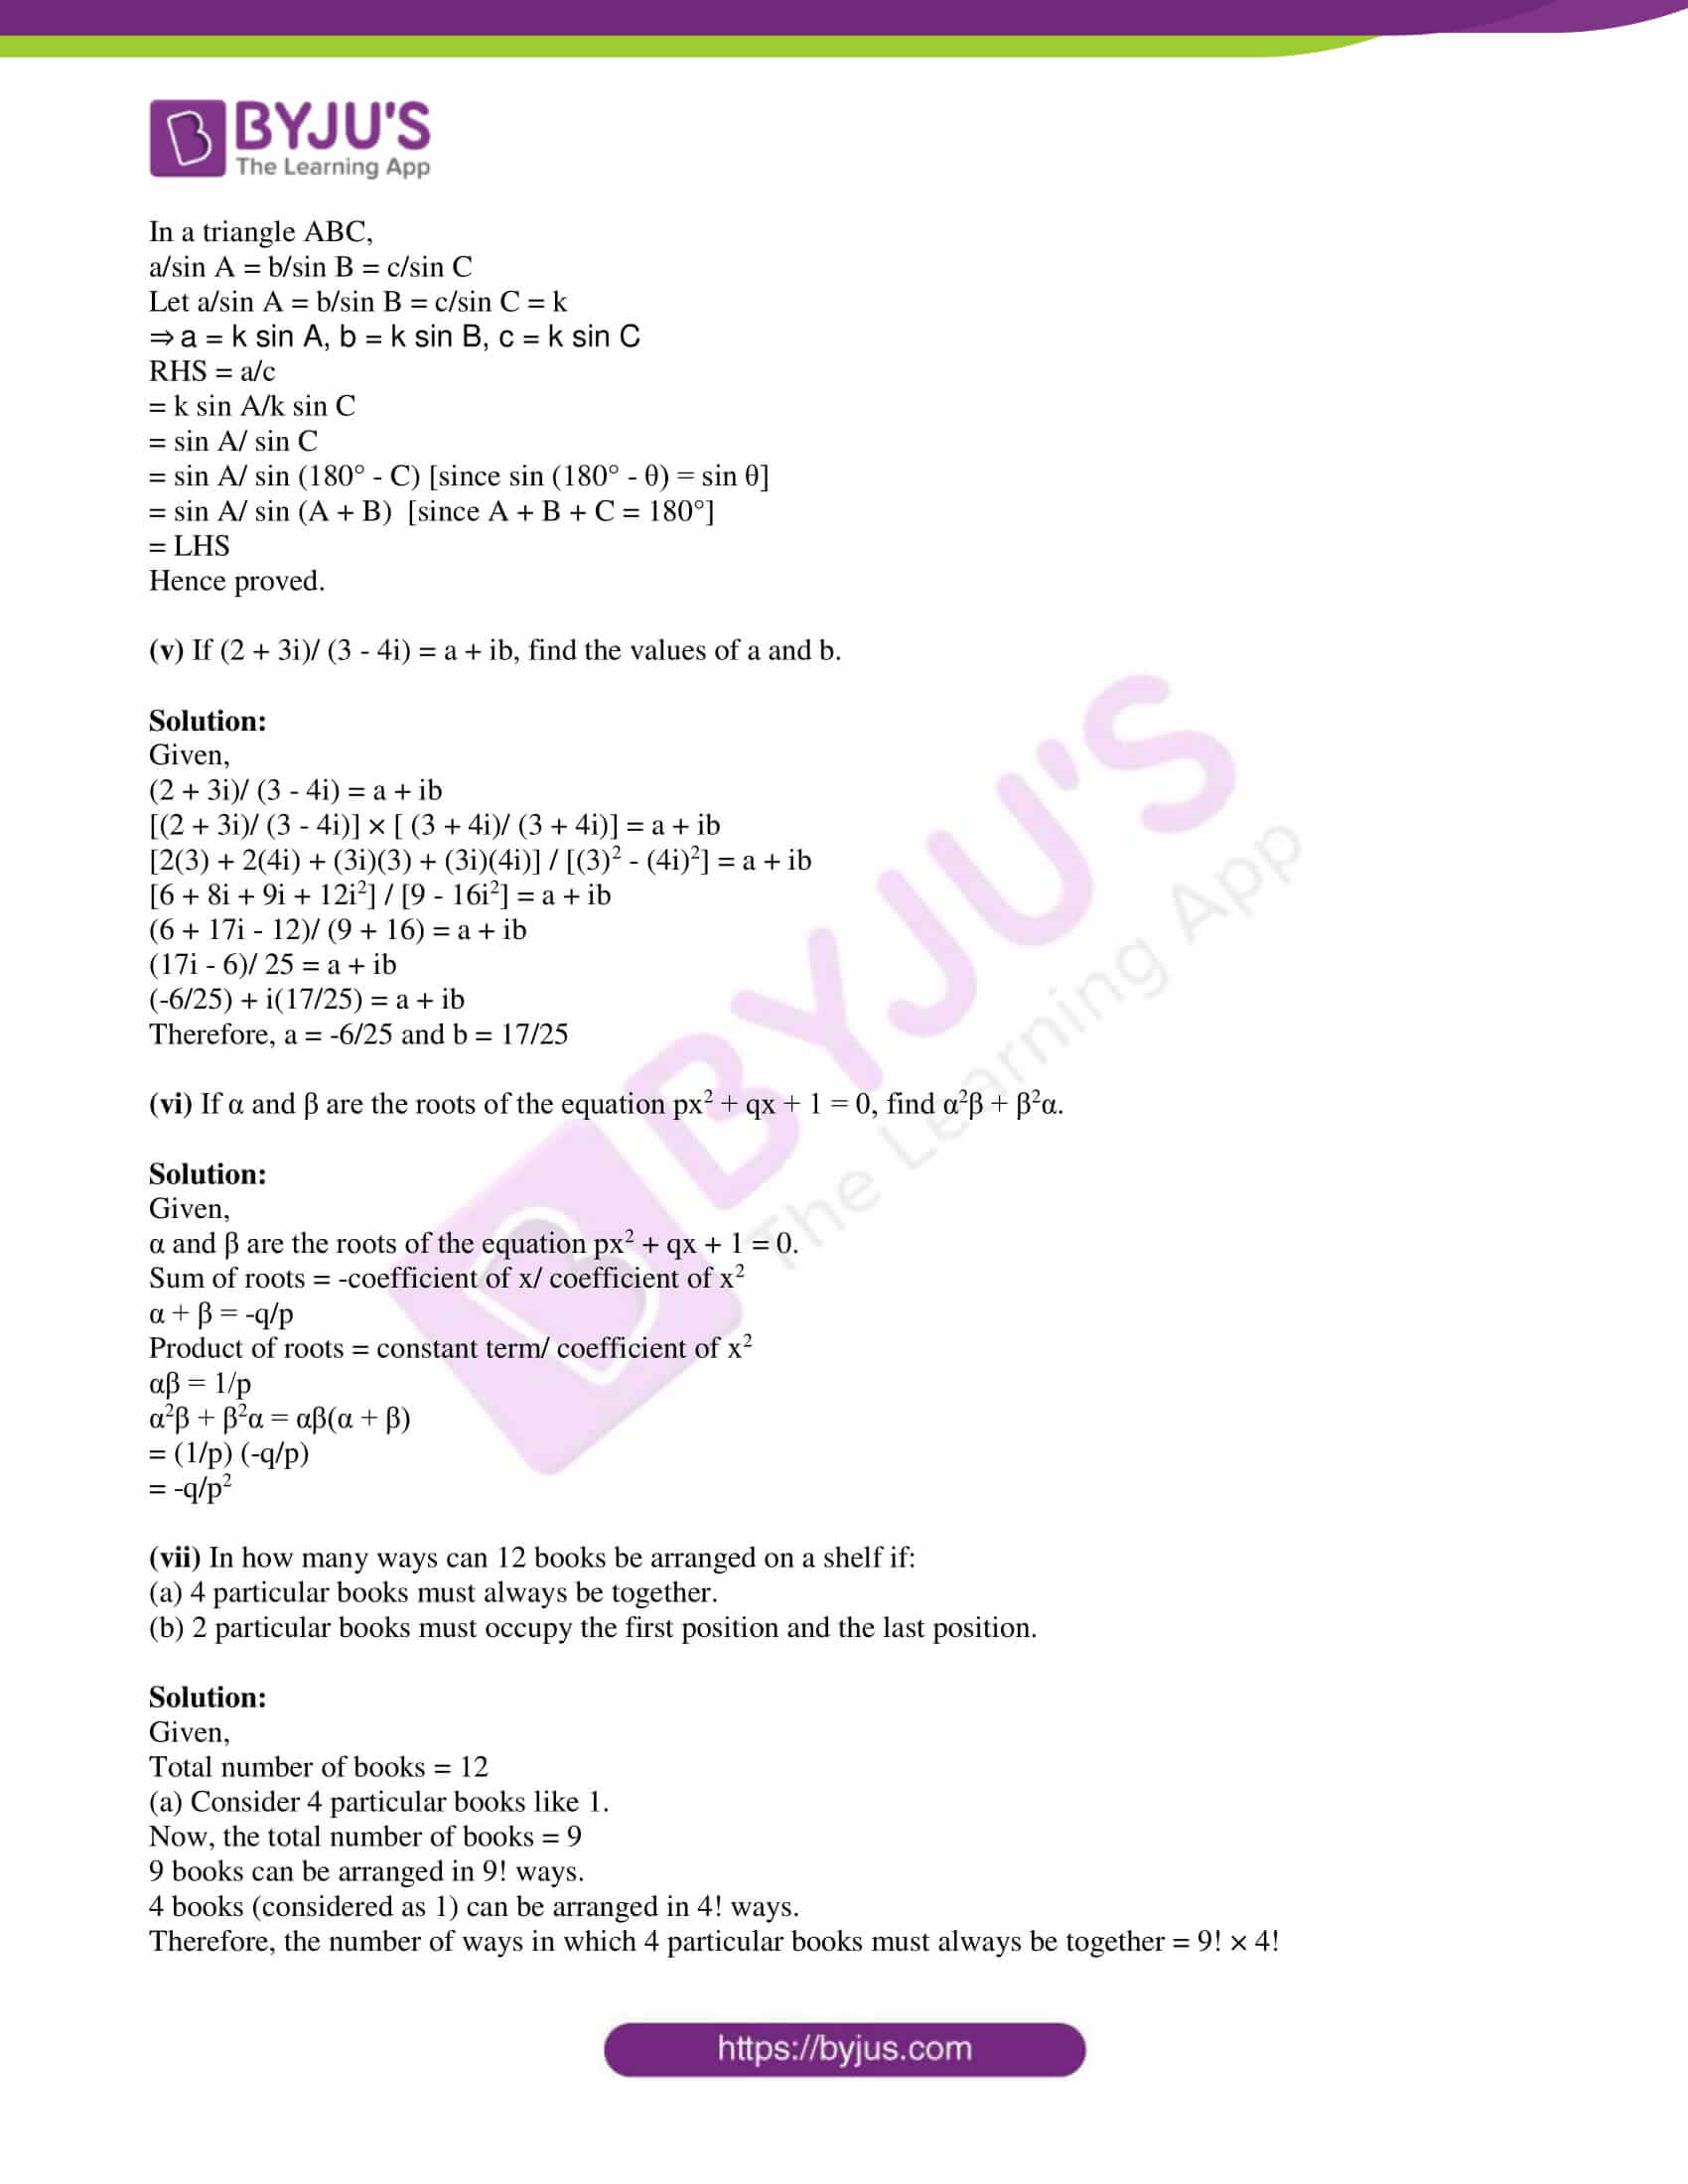 isc class 11 maths specimen question paper with solutions 2019 02